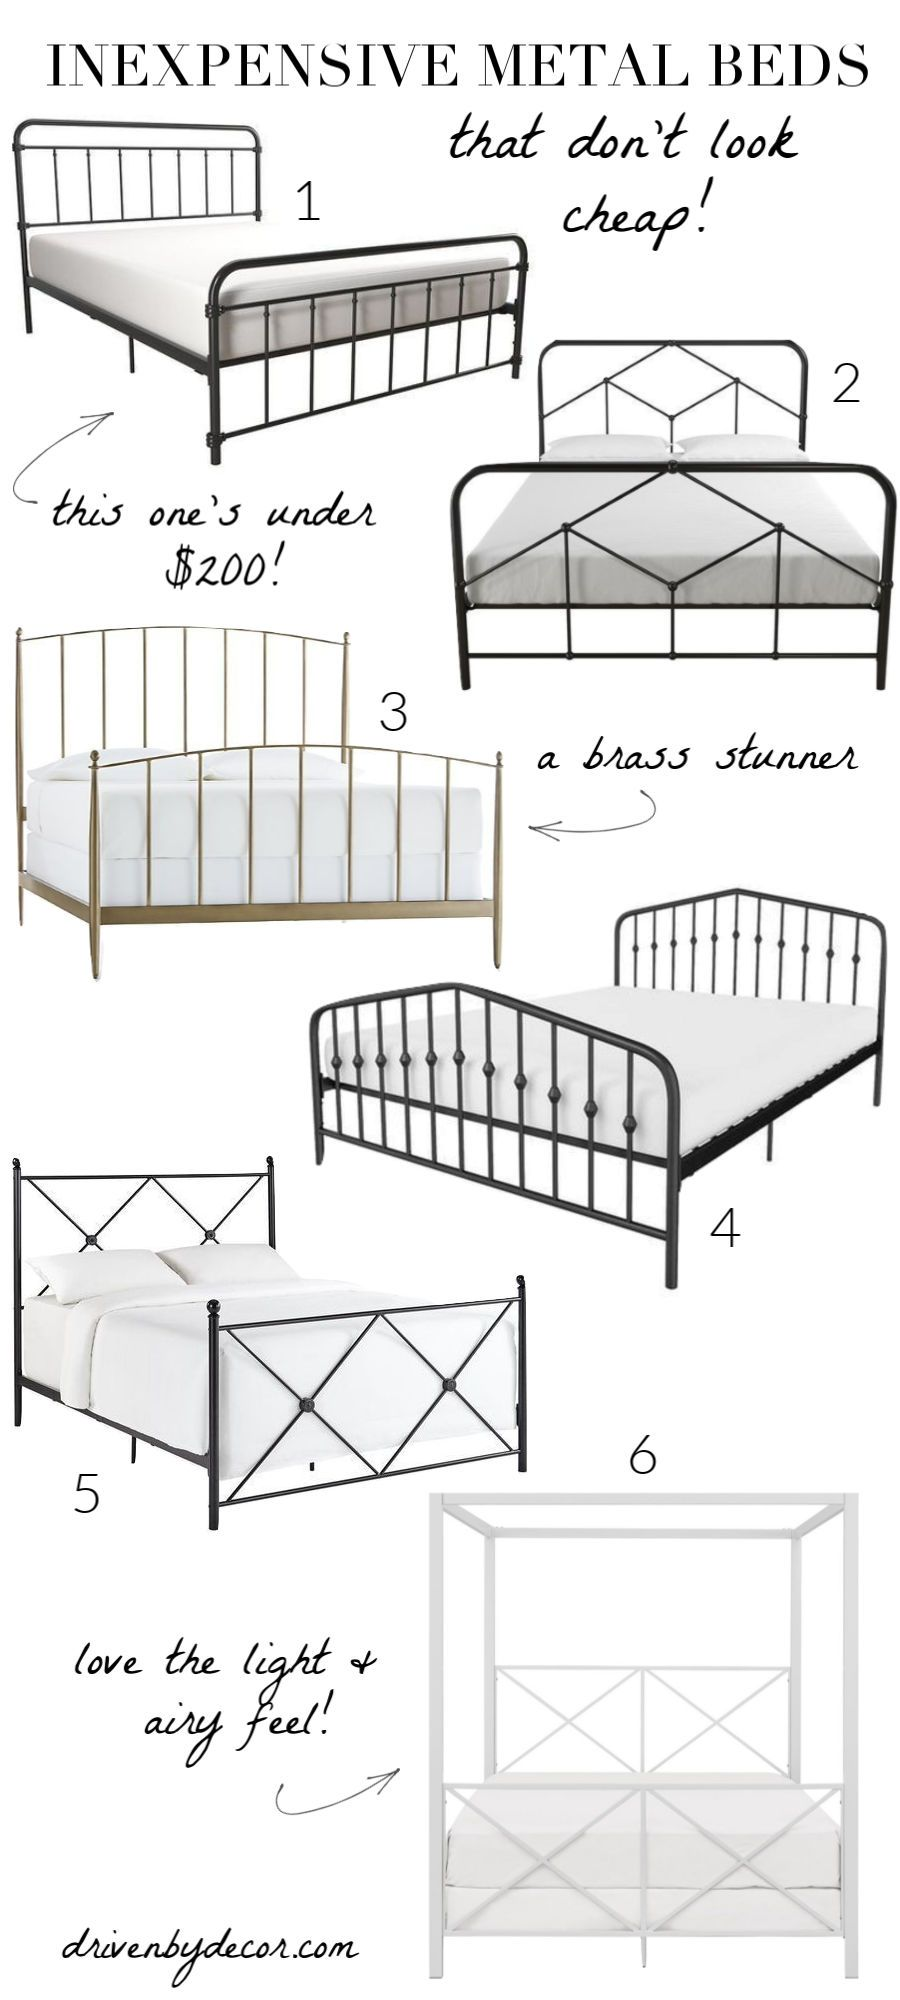 My Favorite Inexpensive Beds That Don T Look Cheap With Images